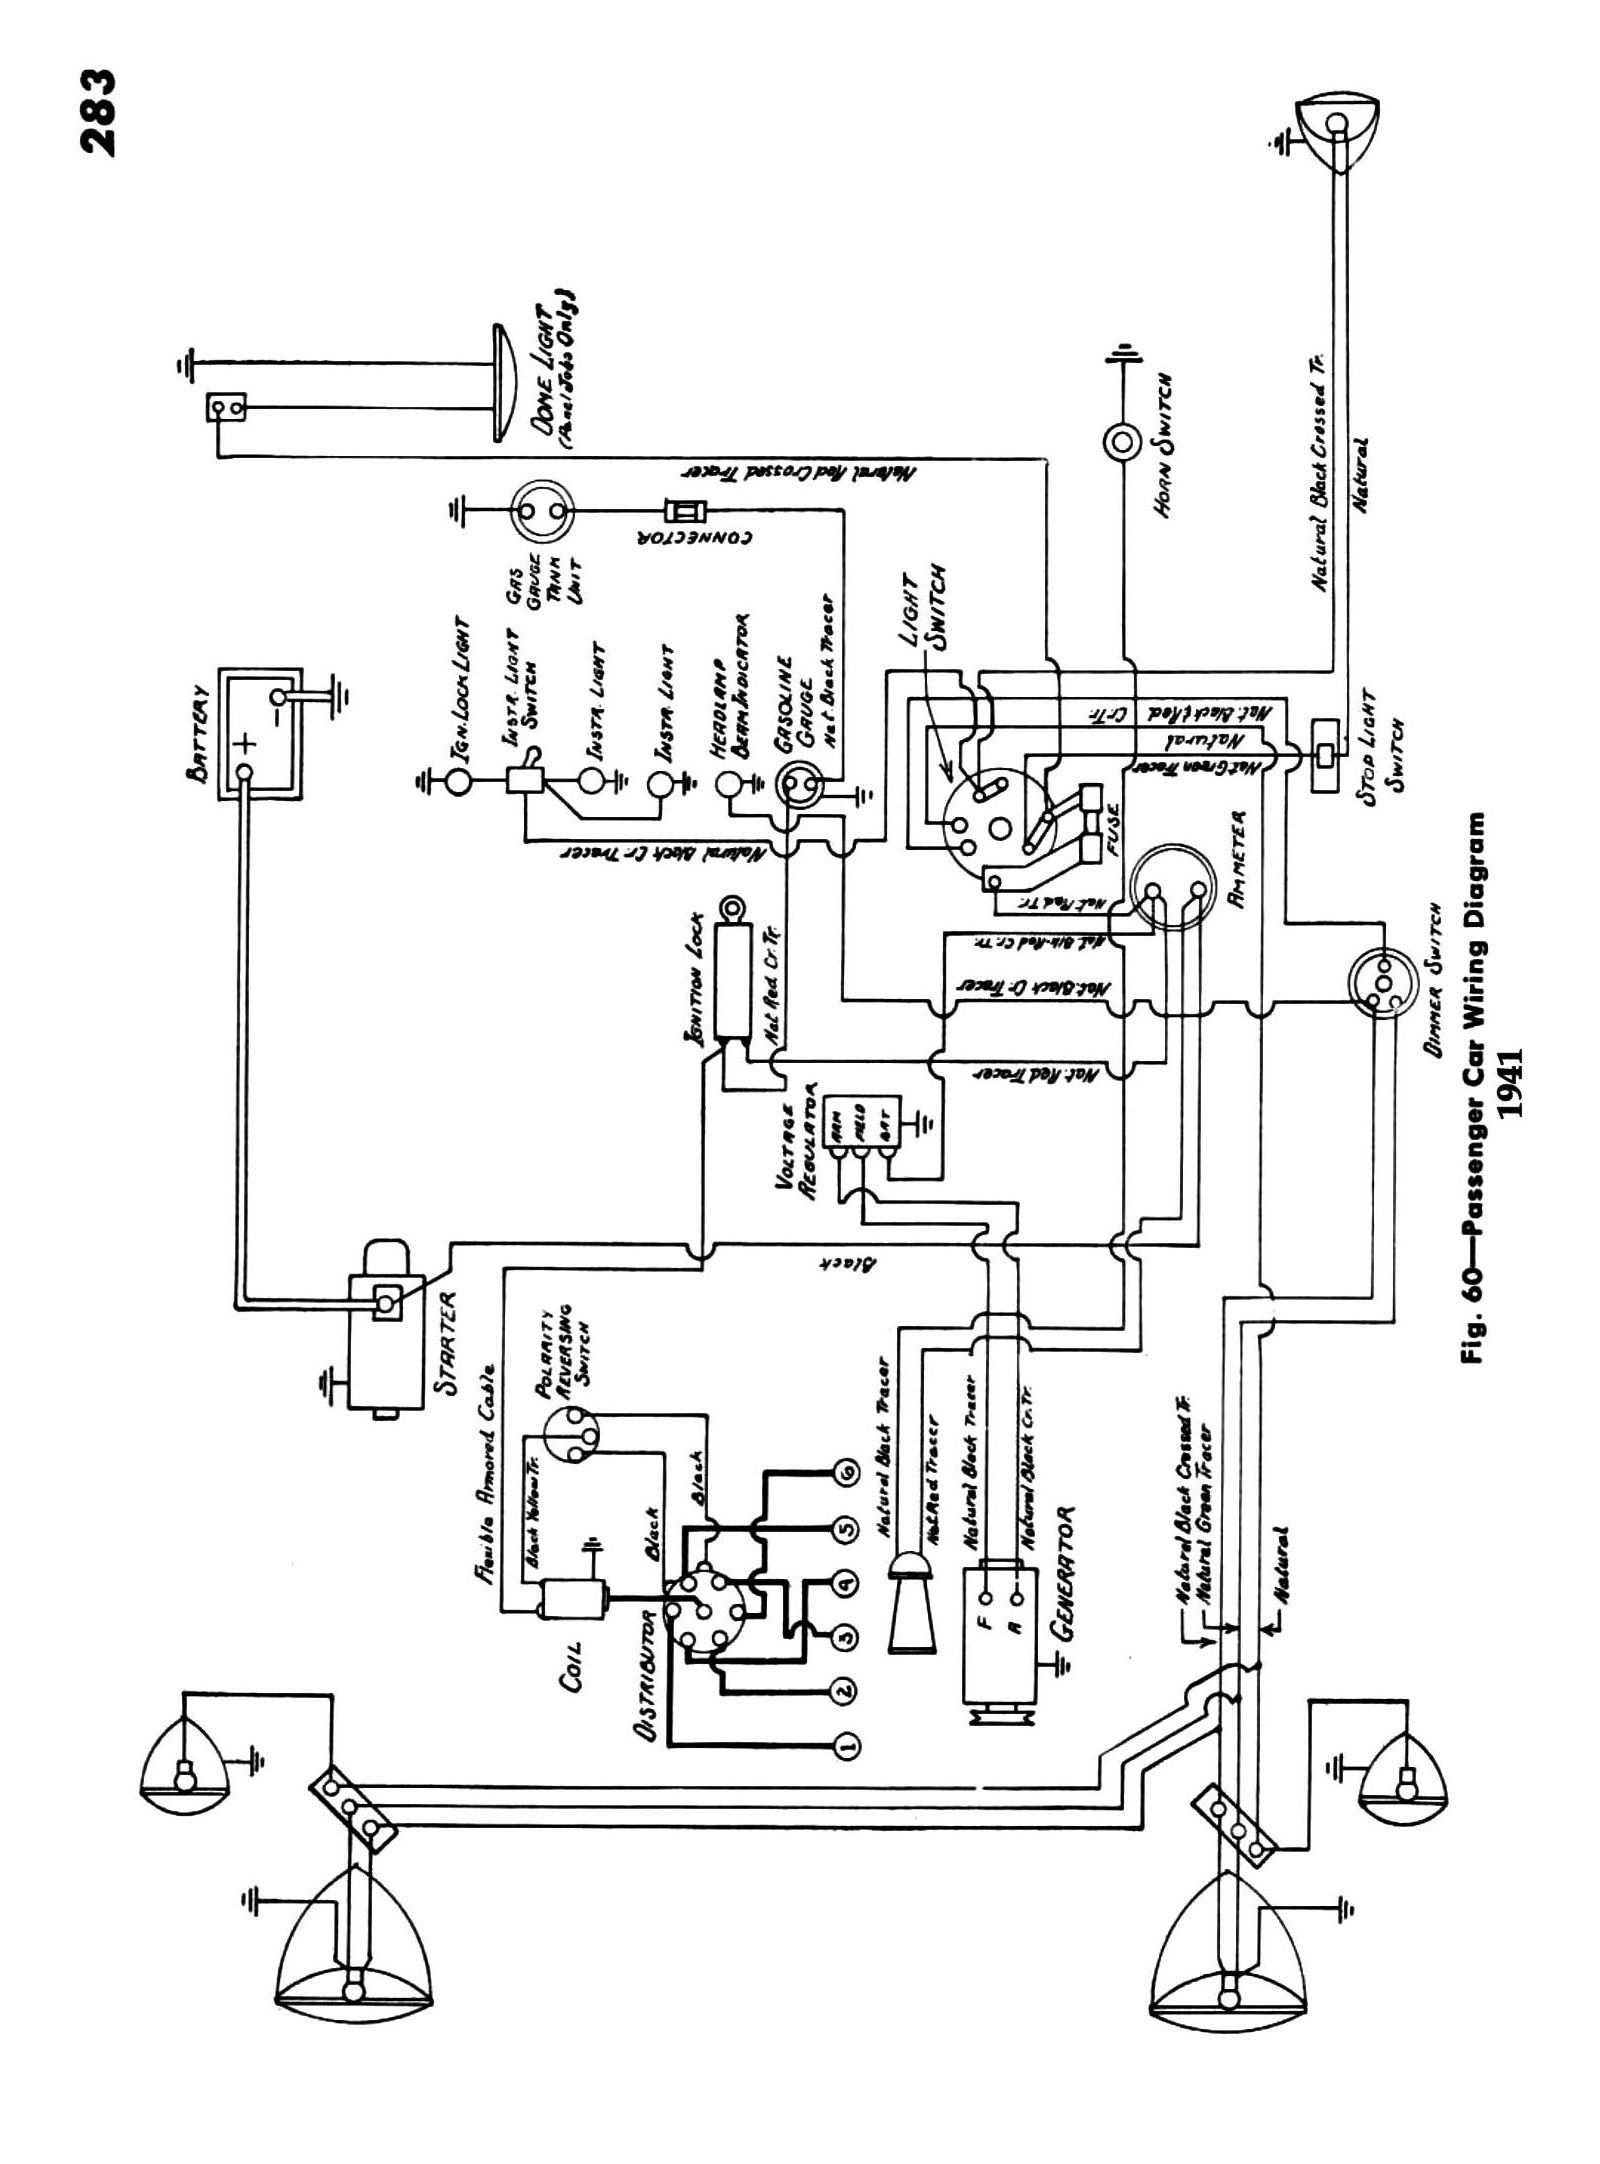 hight resolution of 46 chevy wiring diagram wiring diagram technic 1961 chevy apache wiring diagram apache wiring diagram